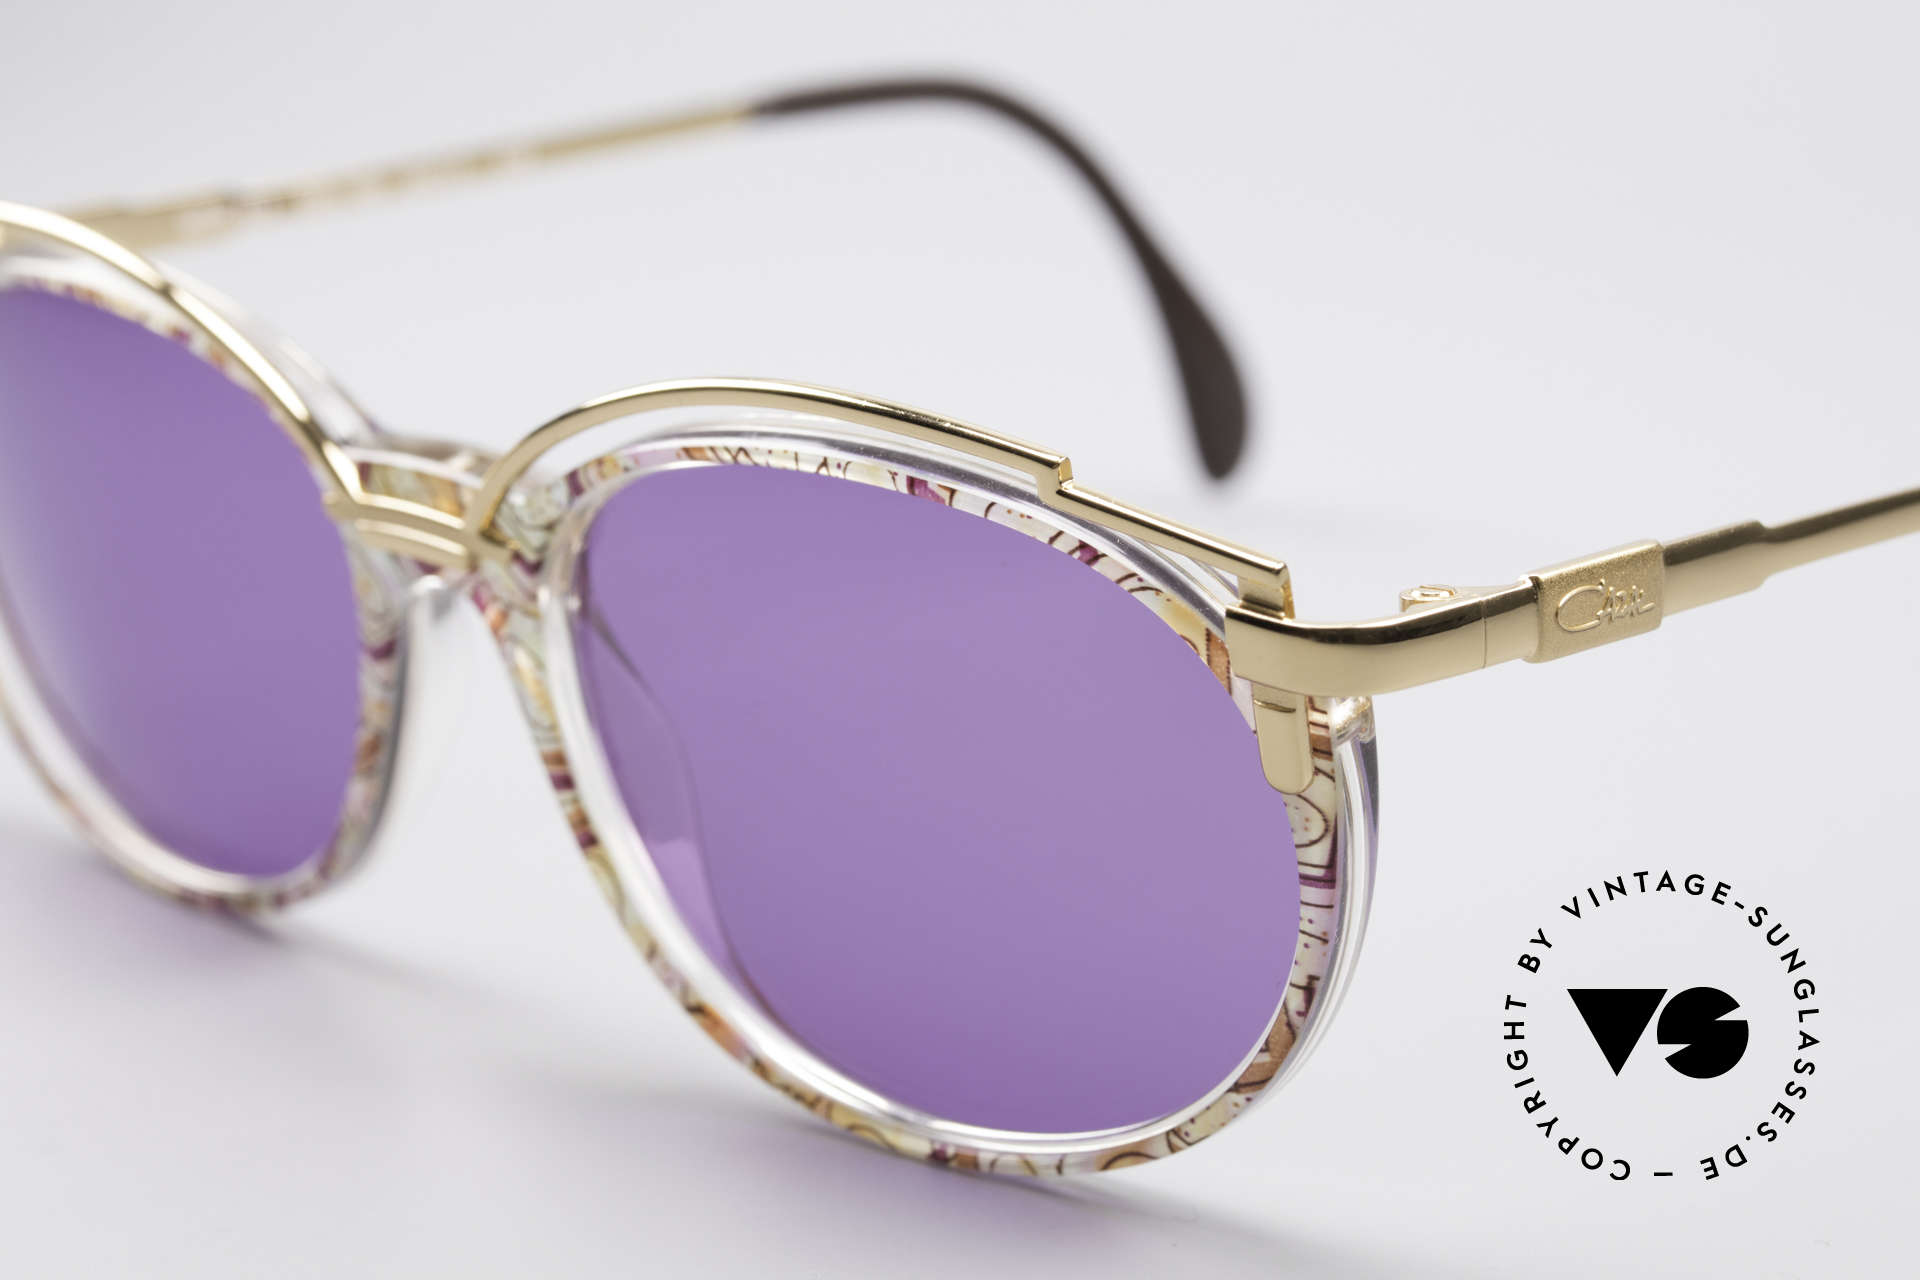 Cazal 358 Rare 90's Vintage Sunglasses, CAZAL called the terrific pattern: 'fuchsia-mint pastel', Made for Women